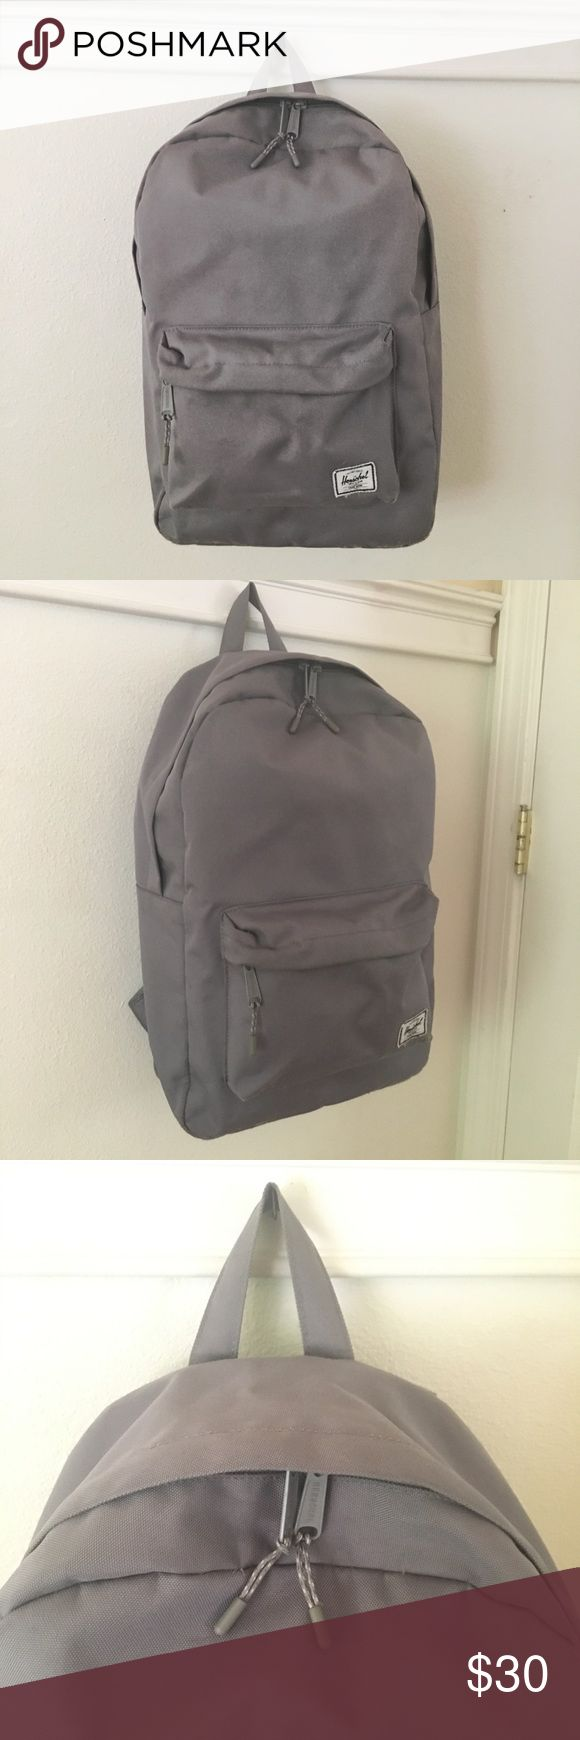 Herschel Grey Backpack PRICE IS NEGOTIABLE! I purchased this backpack last year for school and I am getting a new backpack so now I'm selling it! It is almost in perfect condition. The only issue is there are a few scuffs on the front from usage. Herschel backpacks are amazing quality so this should last you for years to come. Herschel Supply Company Bags Backpacks